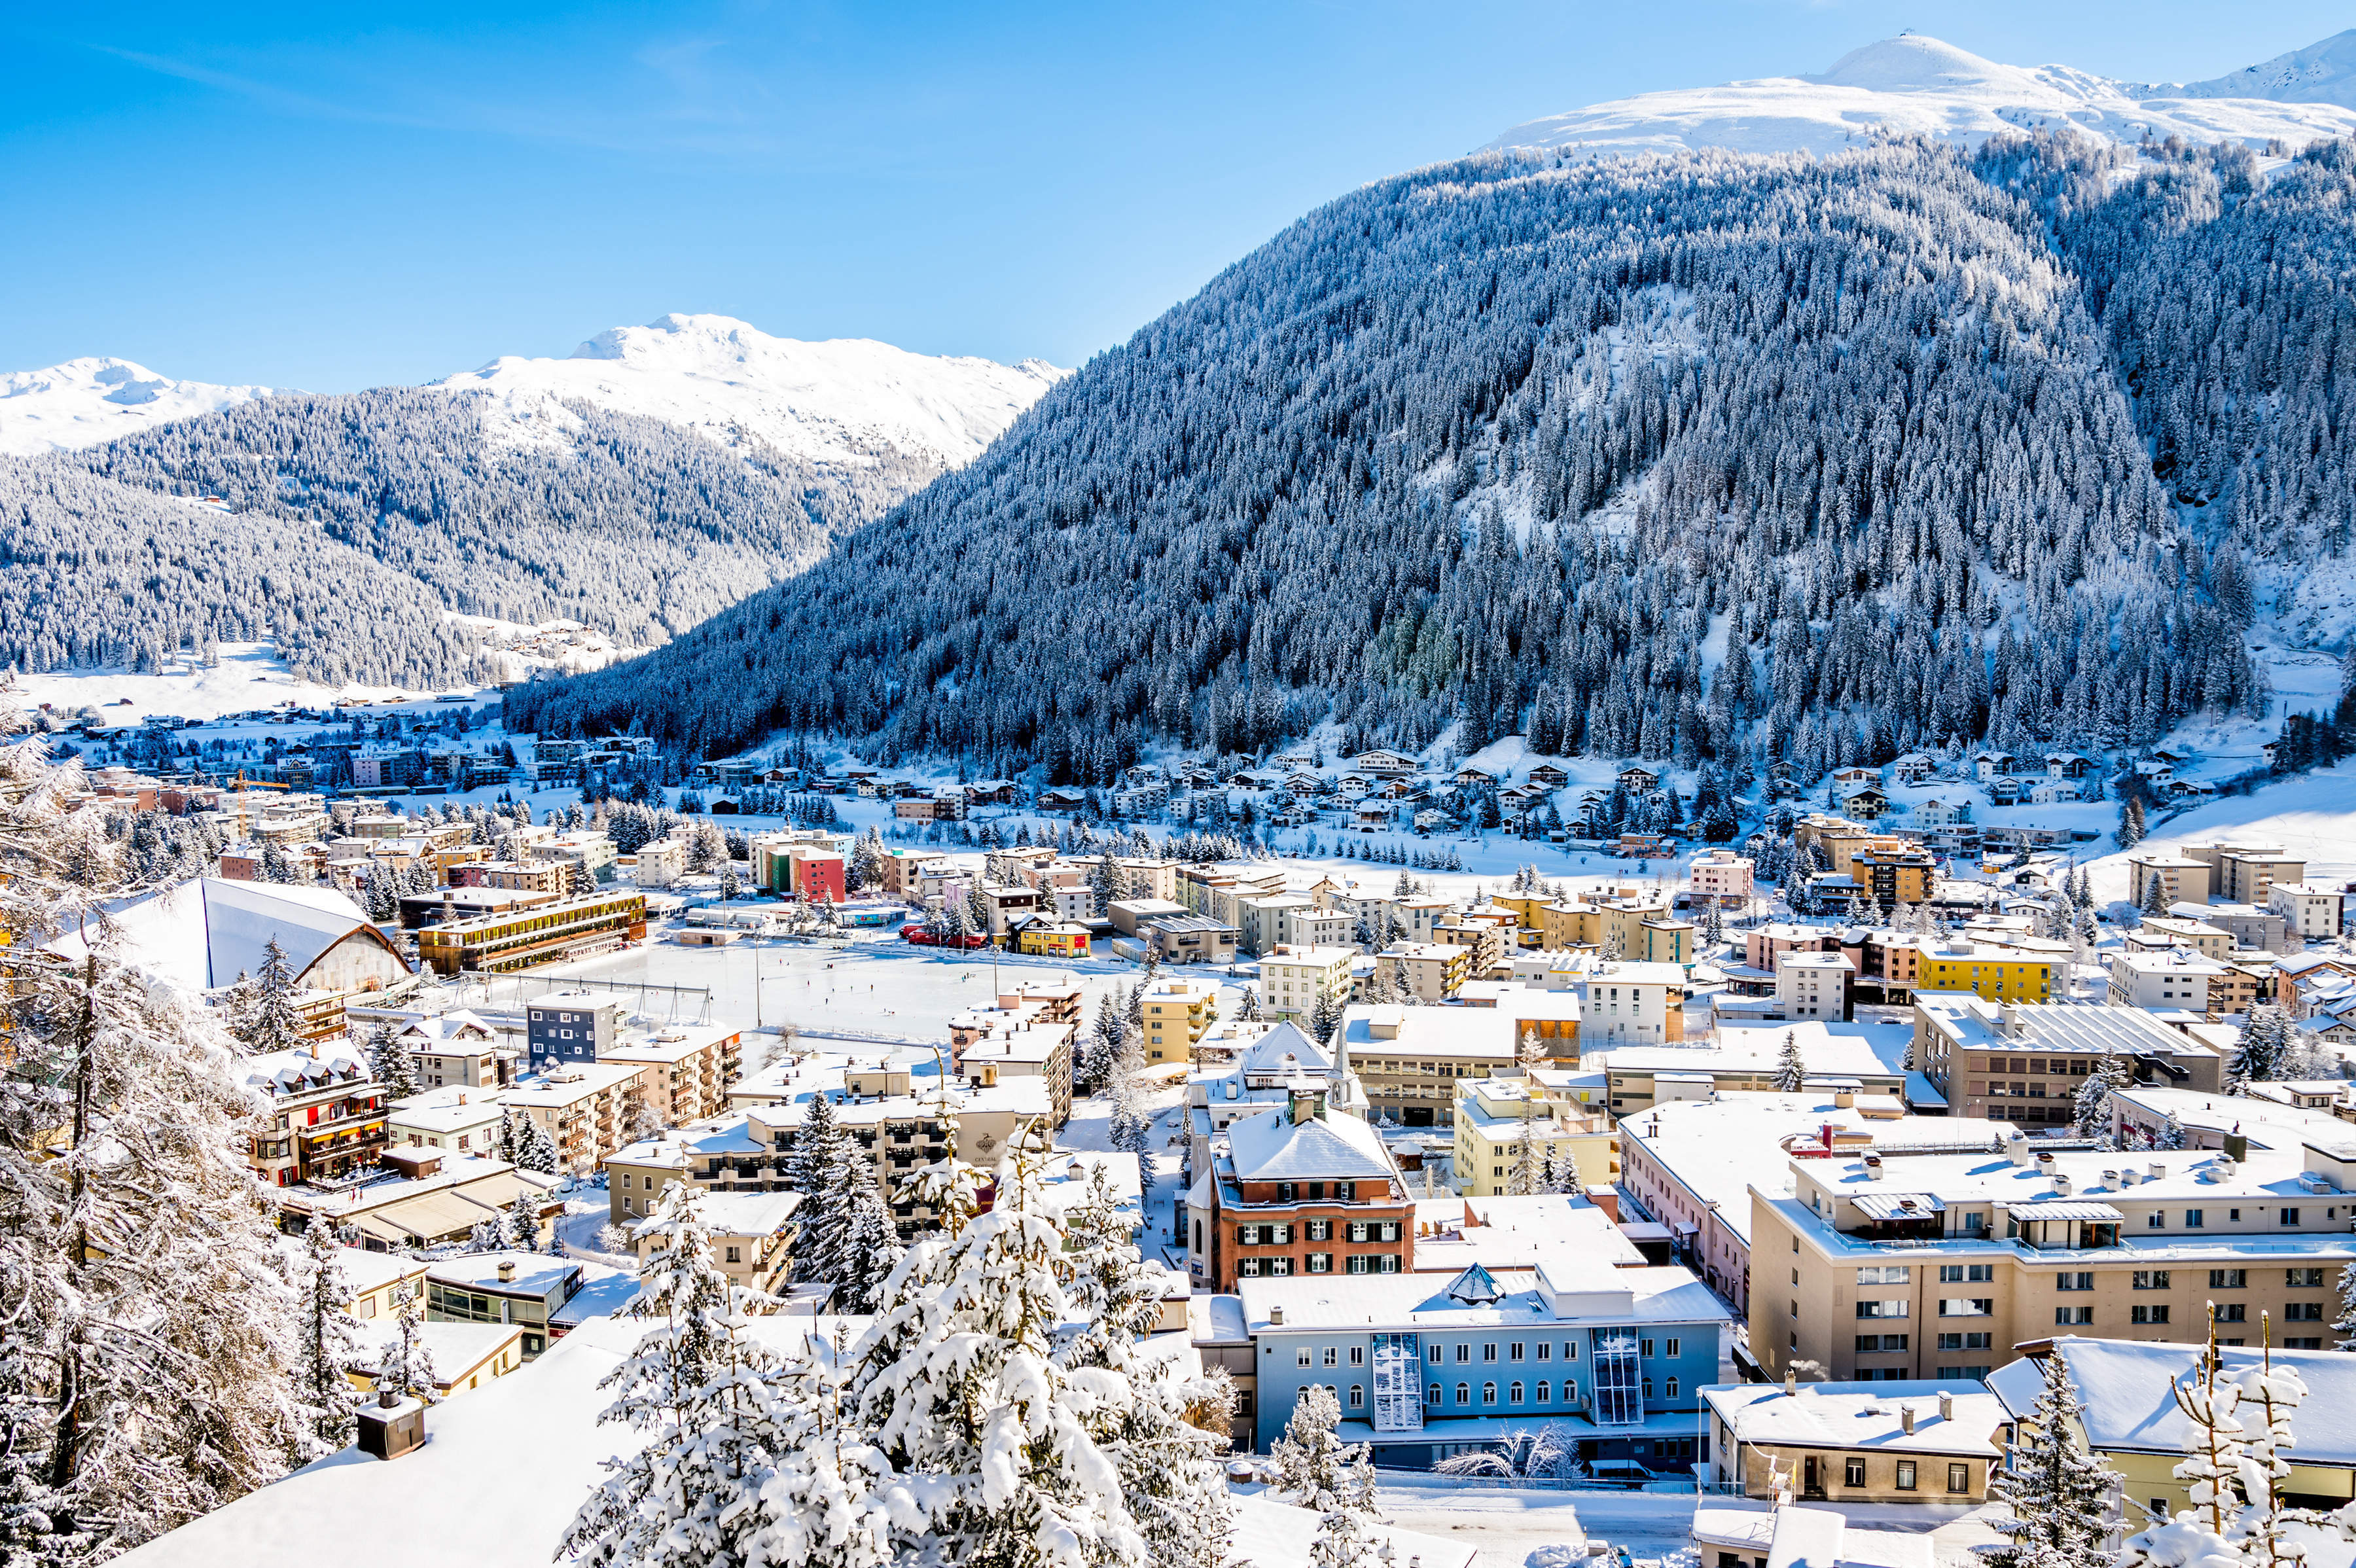 Davos 2018 attendee guide: live the life of luxury in the playground for the powerful